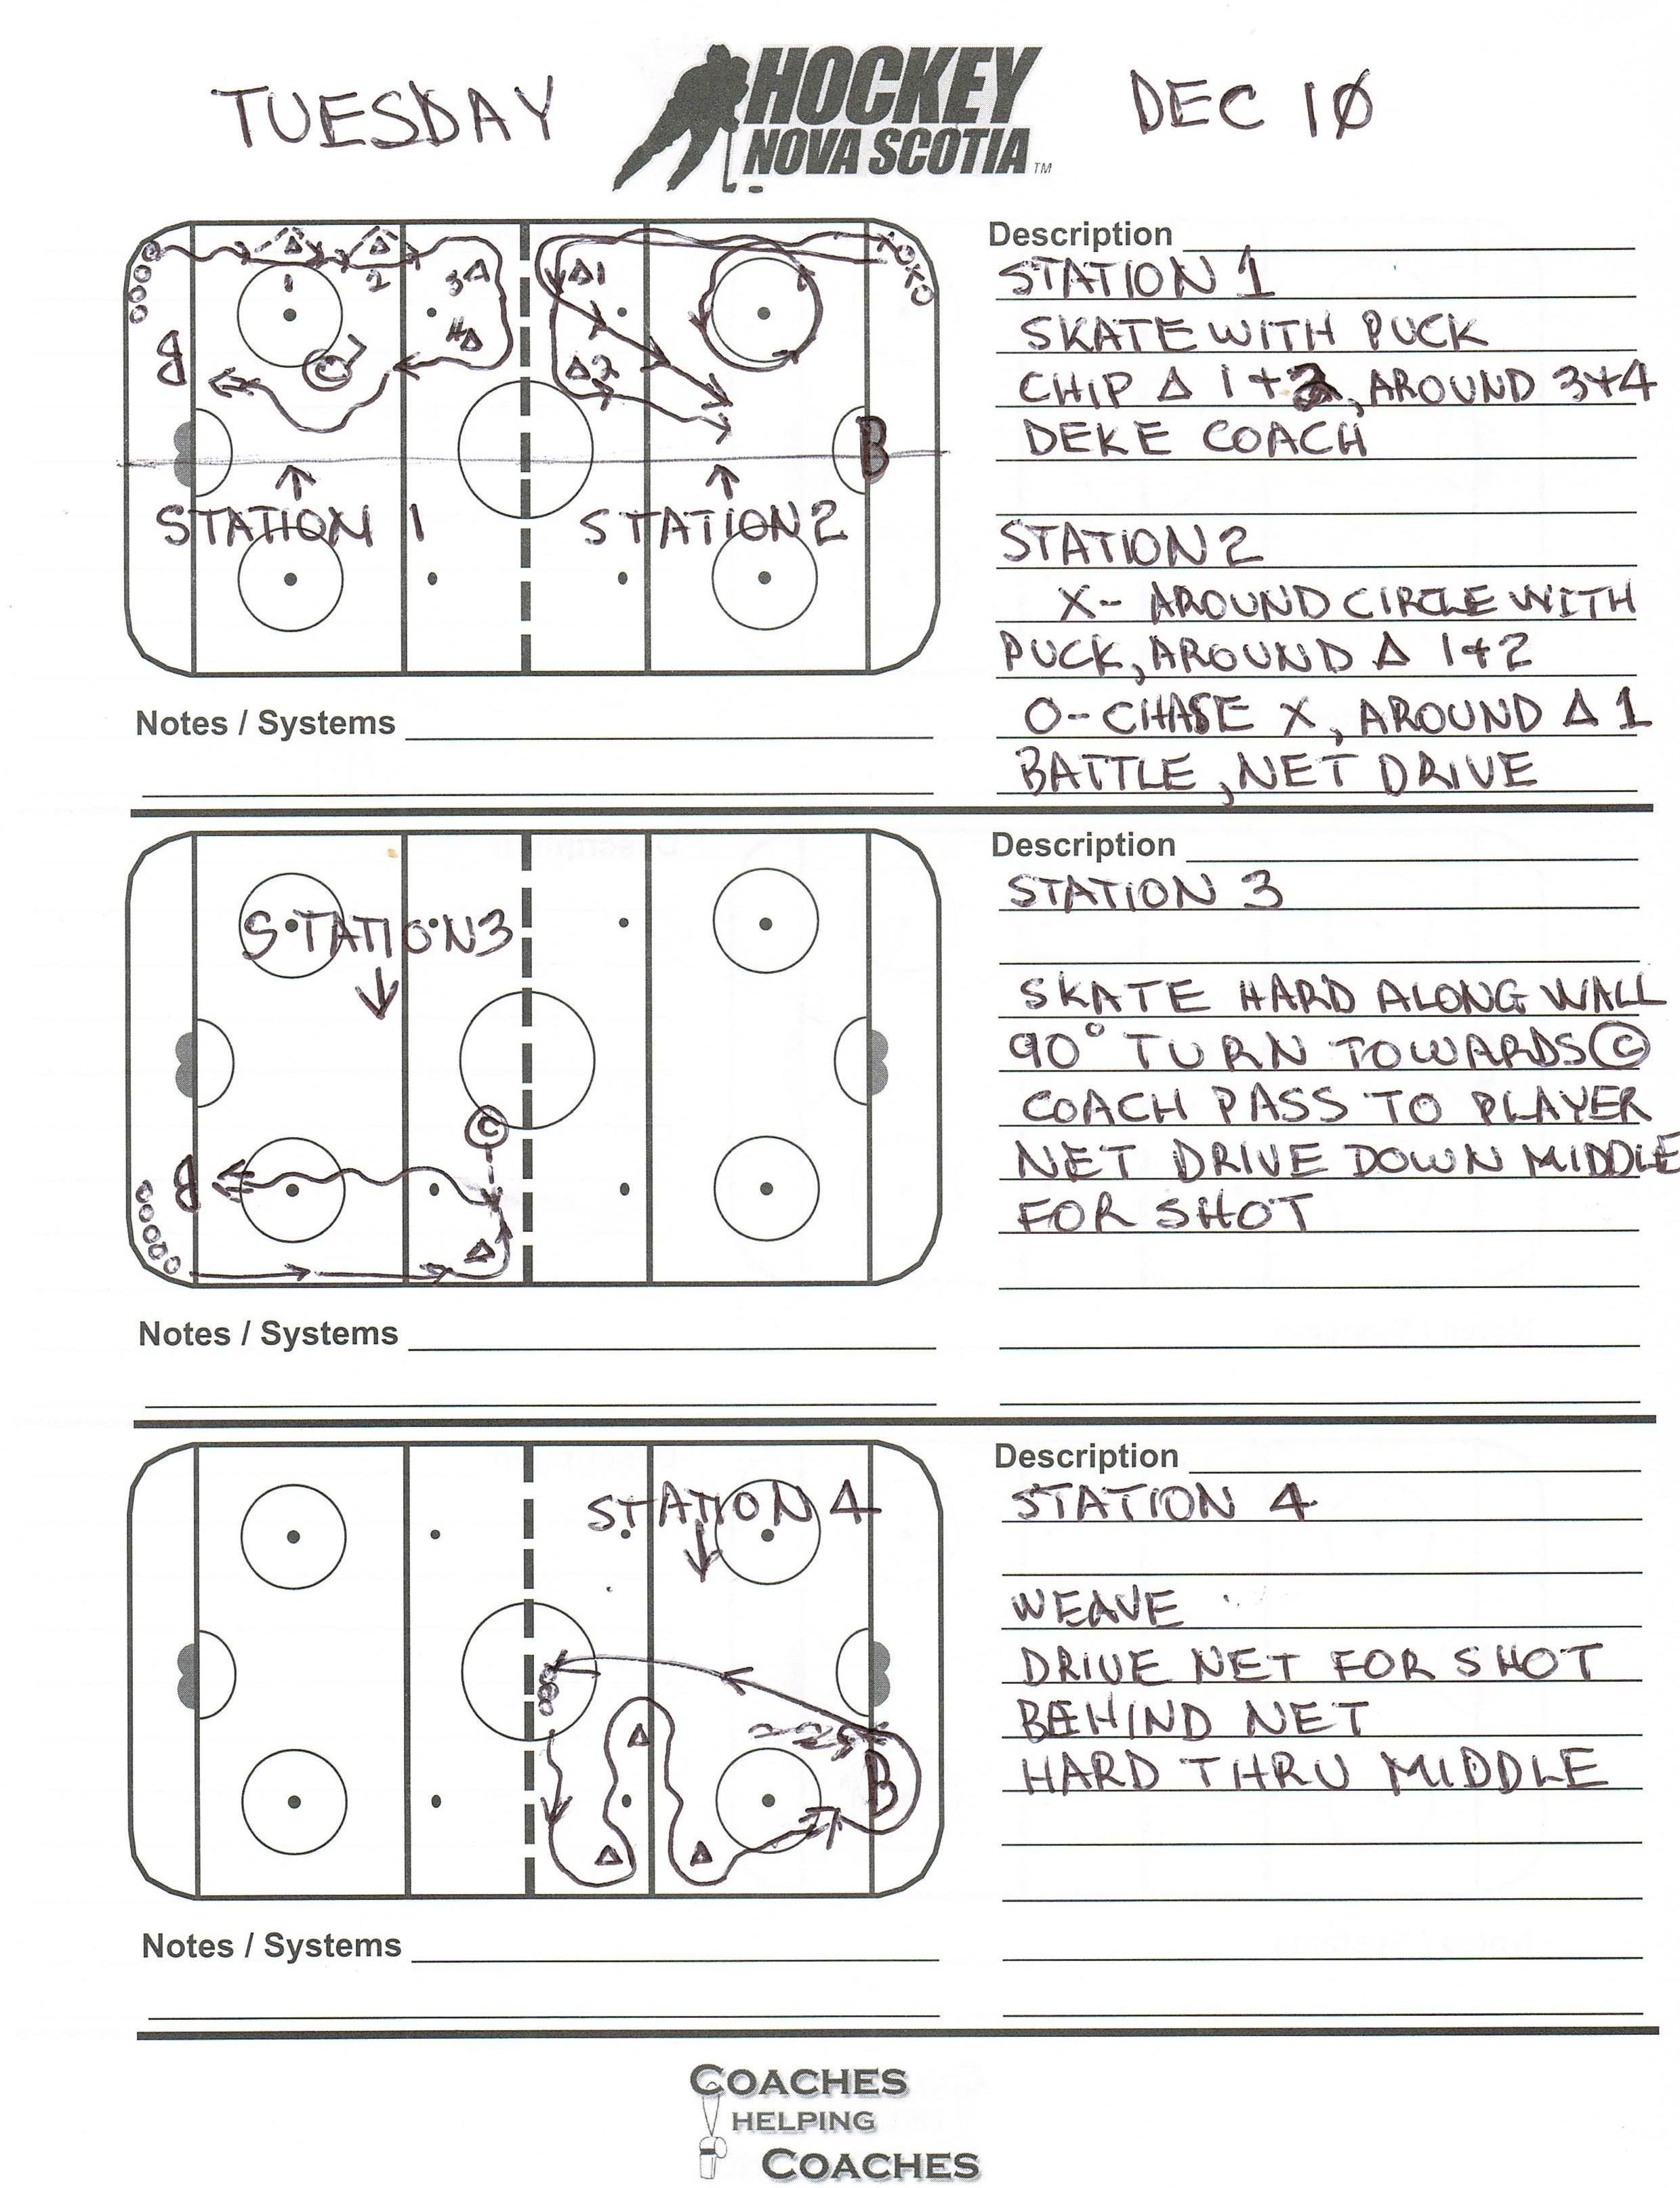 Full Ice Practice Plan For Novice U8 With Four Stations